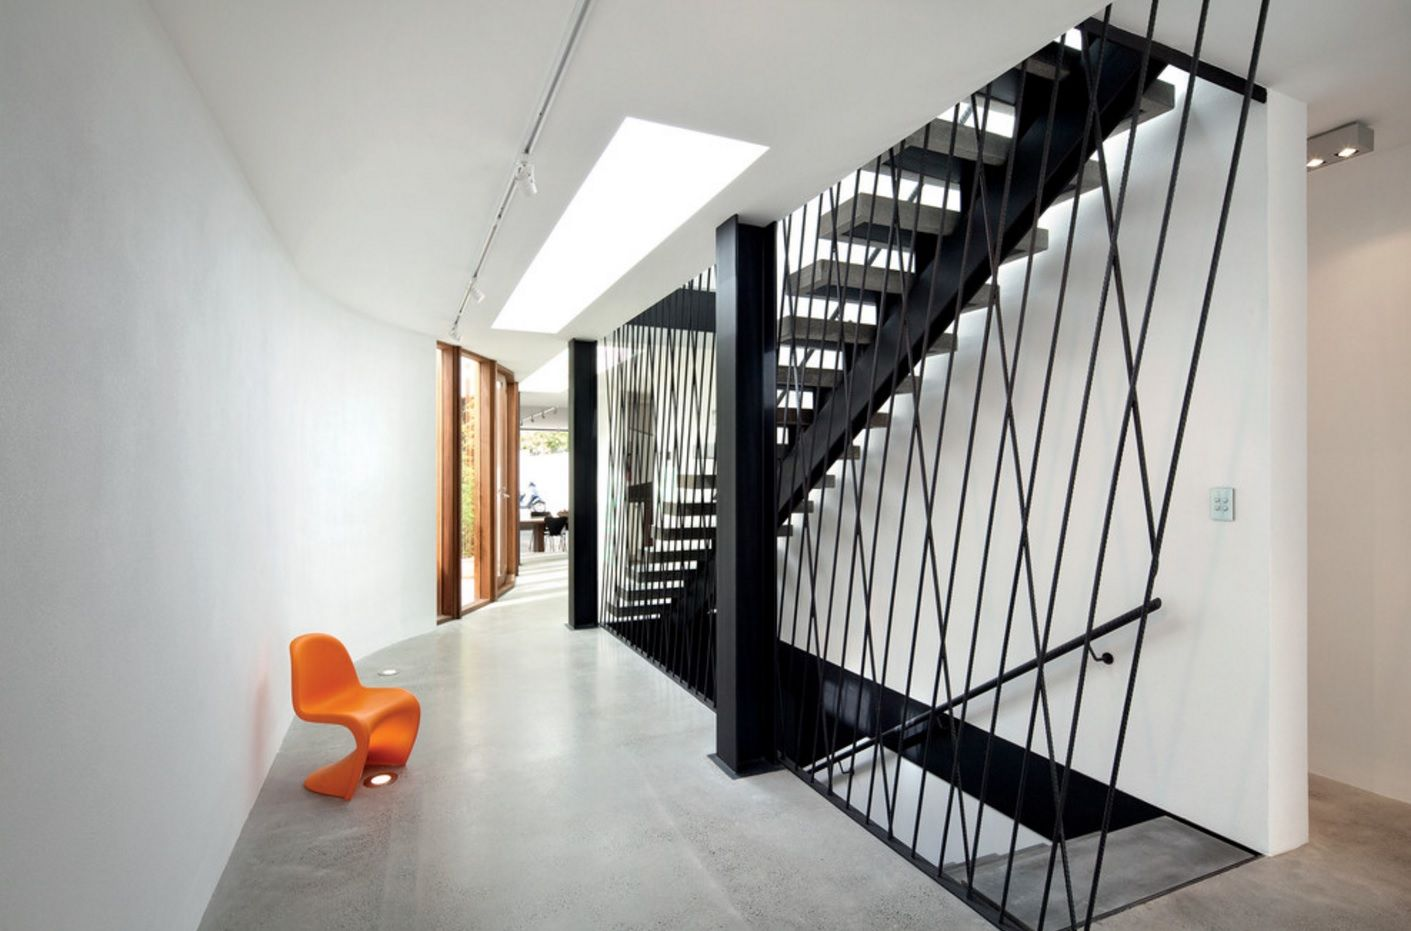 Latticed stairway zone to prevent falling down the floor